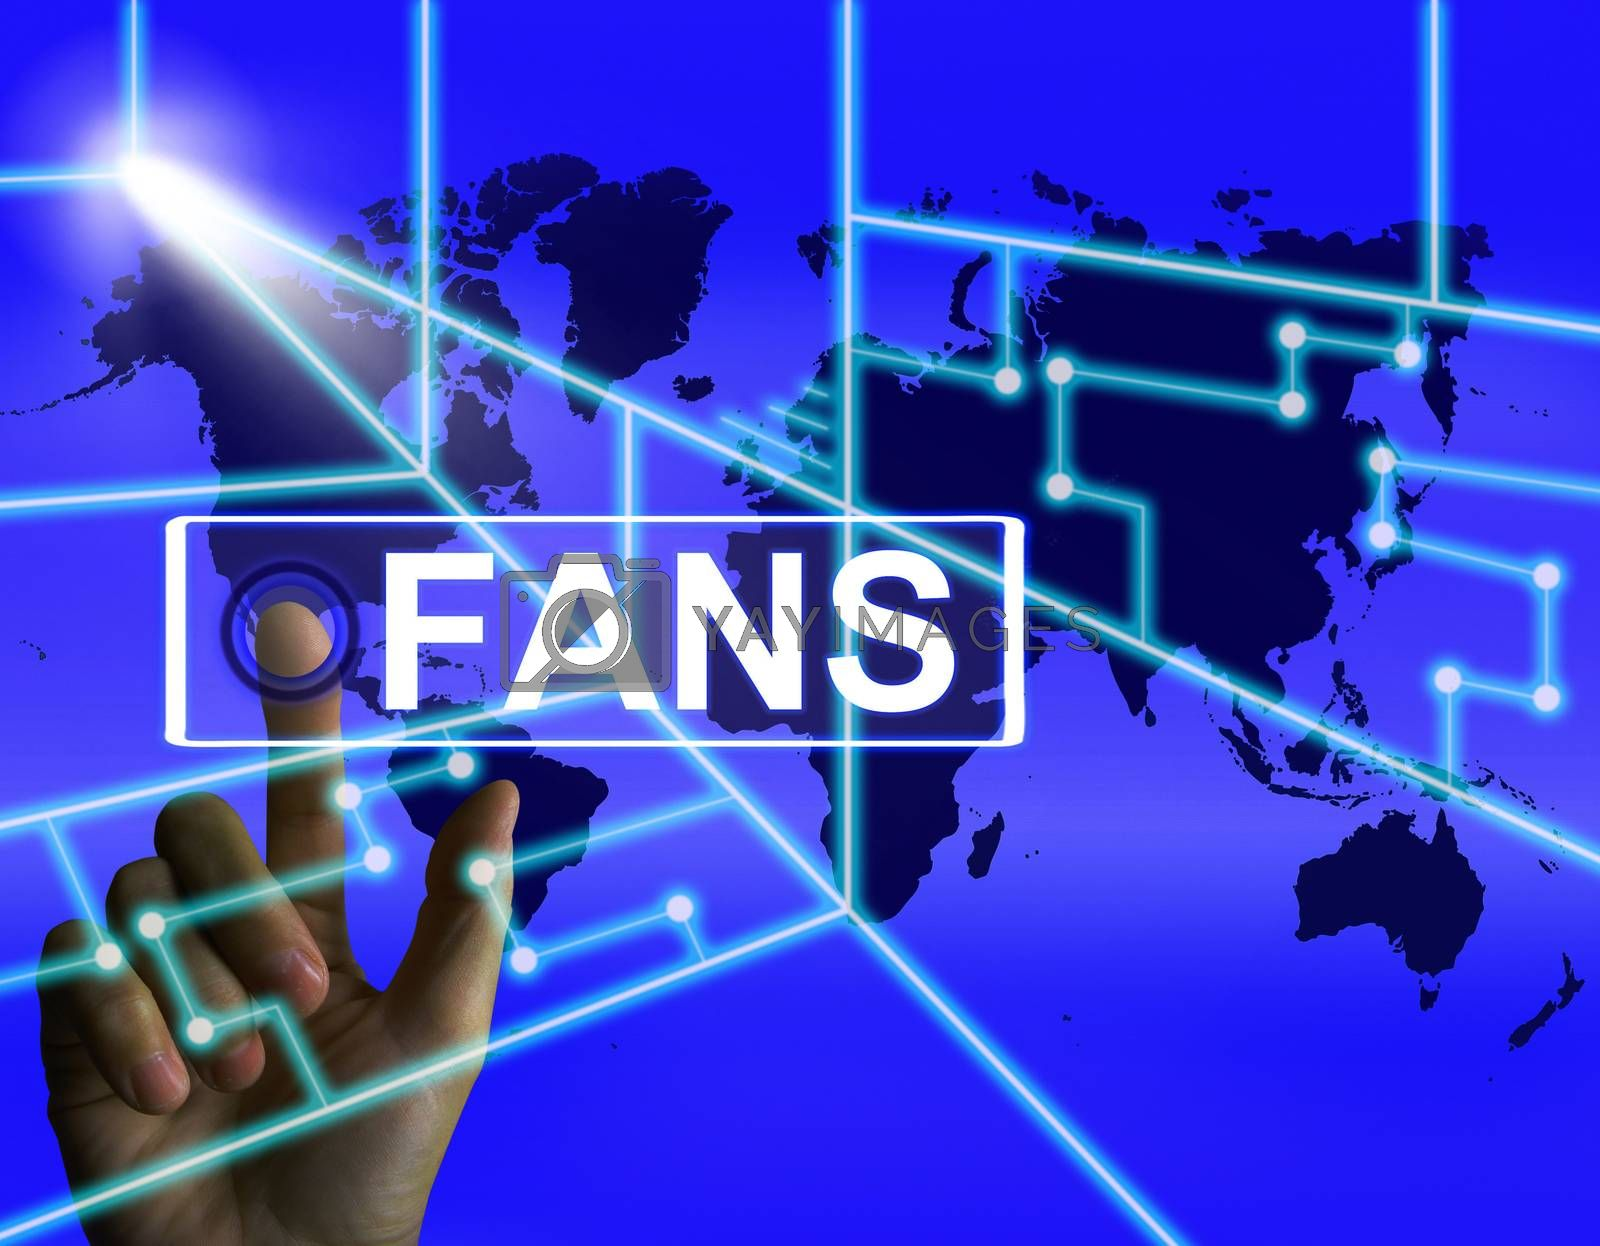 Fans Screen Shows Worldwide or Internet Followers or Admirers by stuartmiles